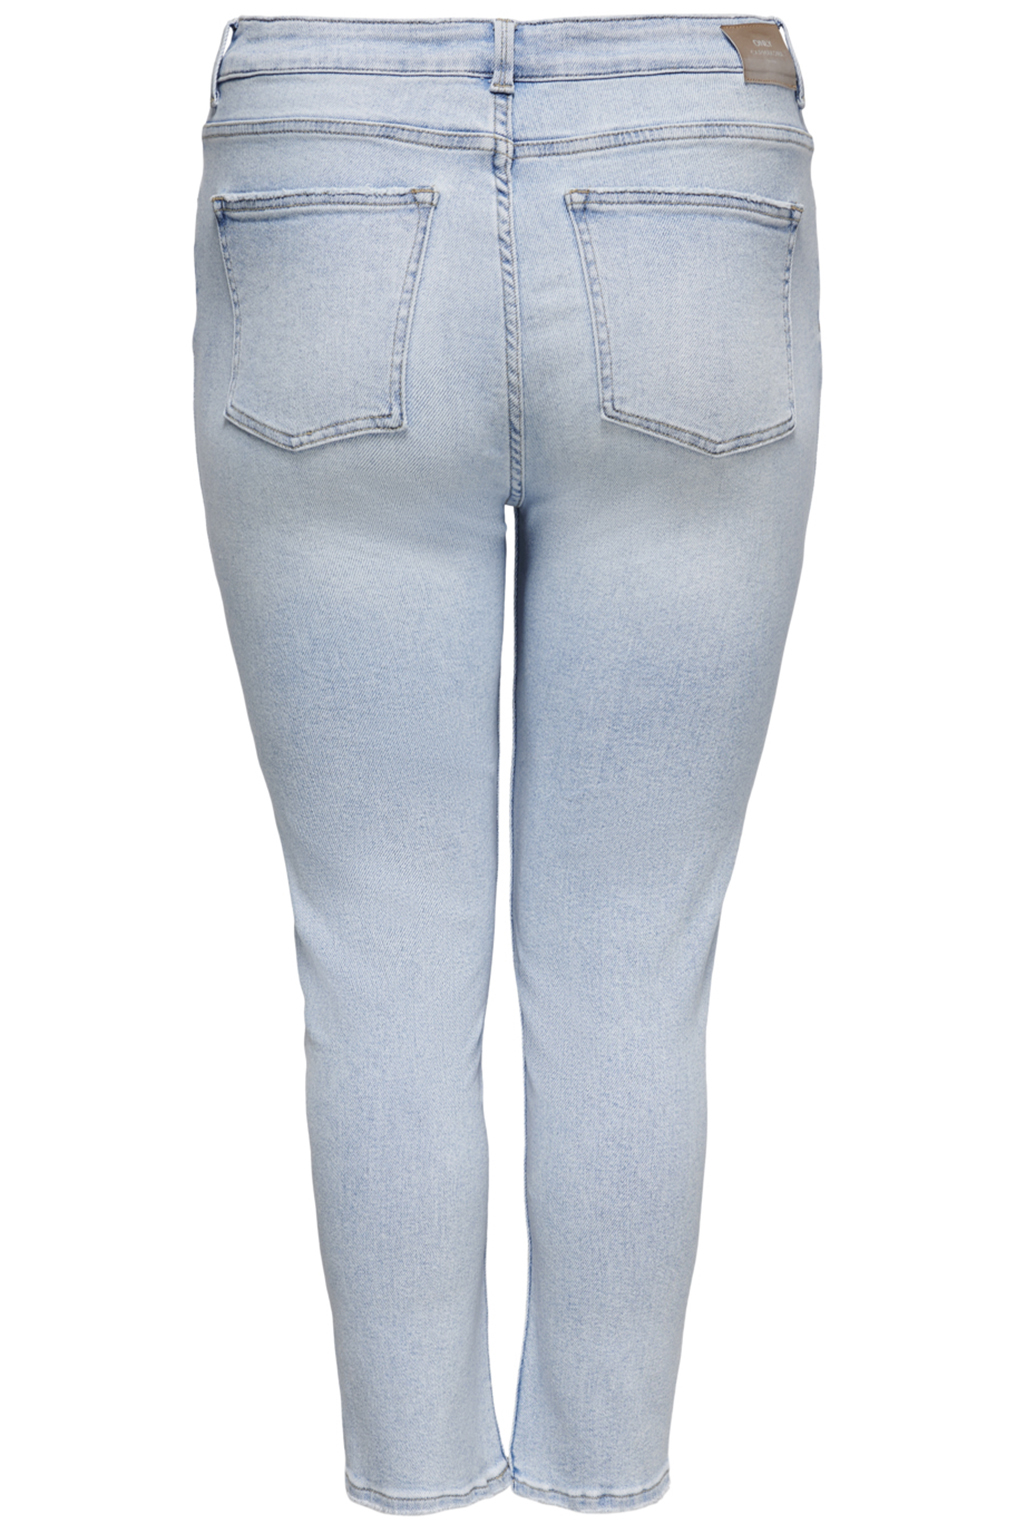 ONLY Carmakoma jeans CARRICA